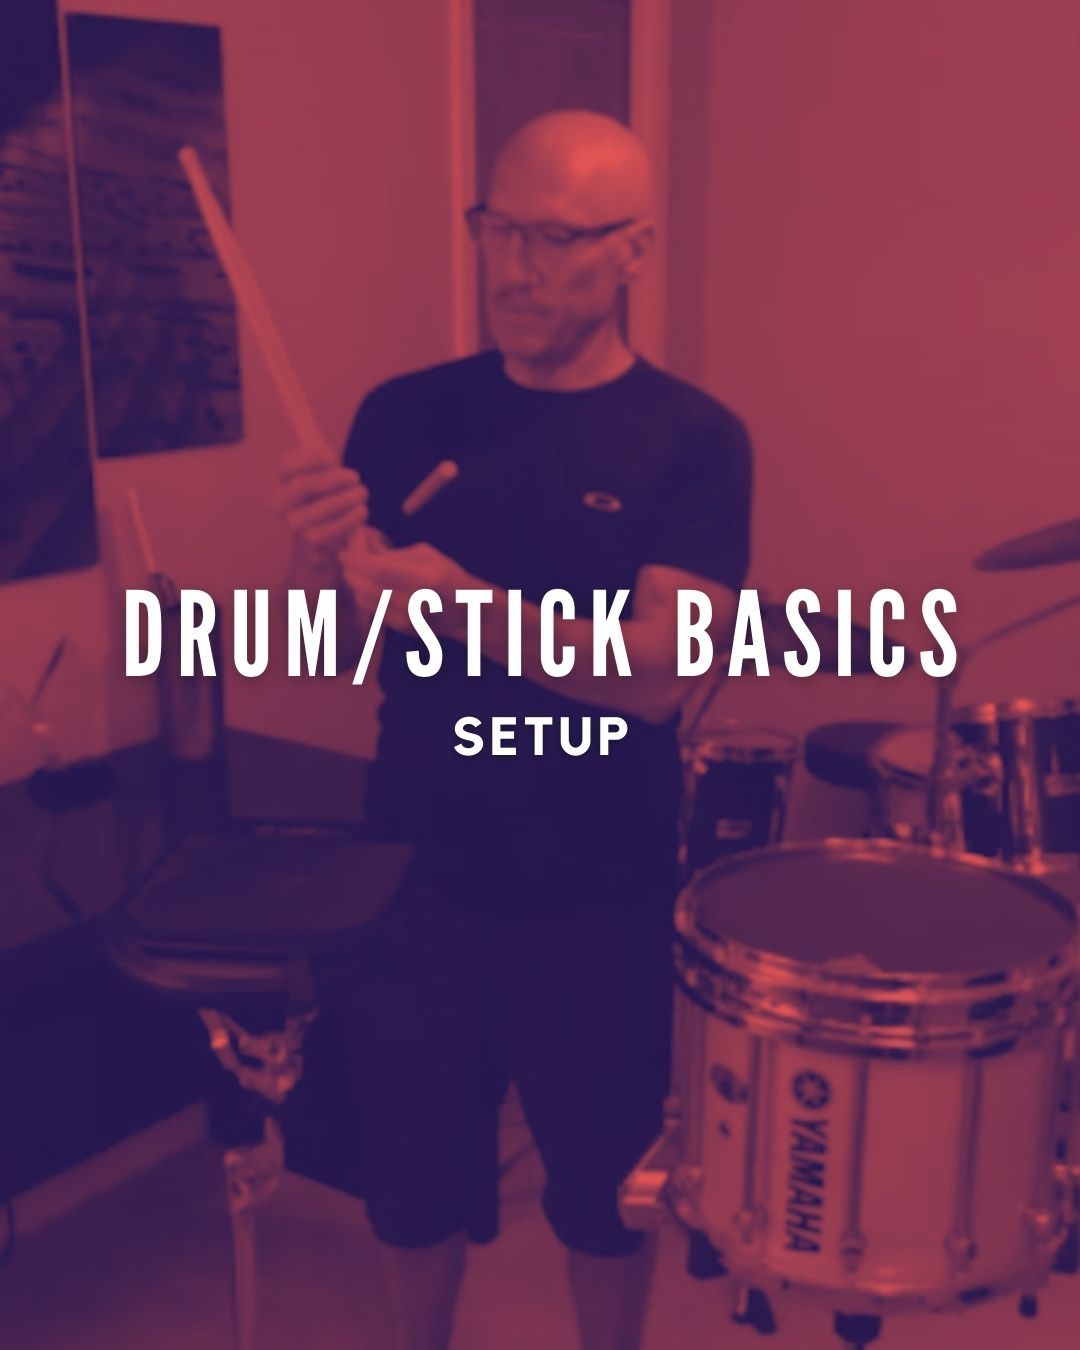 Drum/Stick Basics